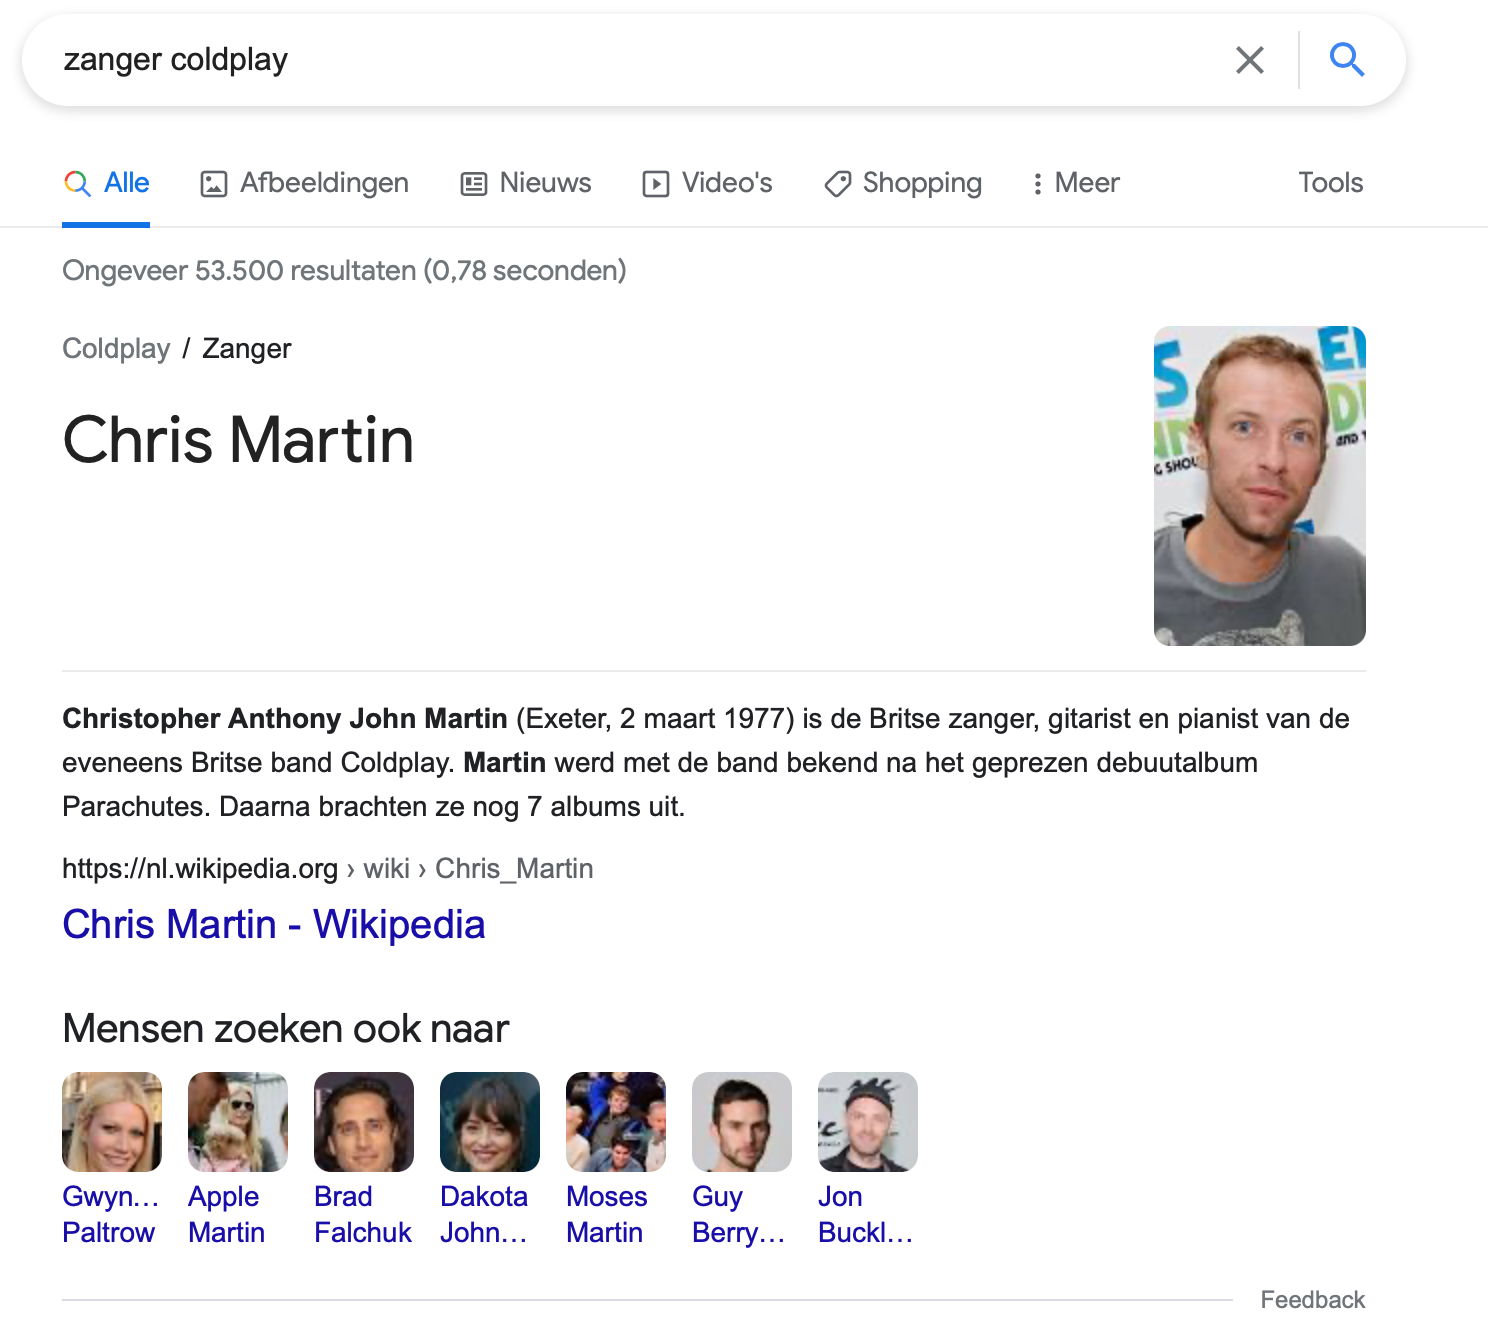 Knowledge graph verband